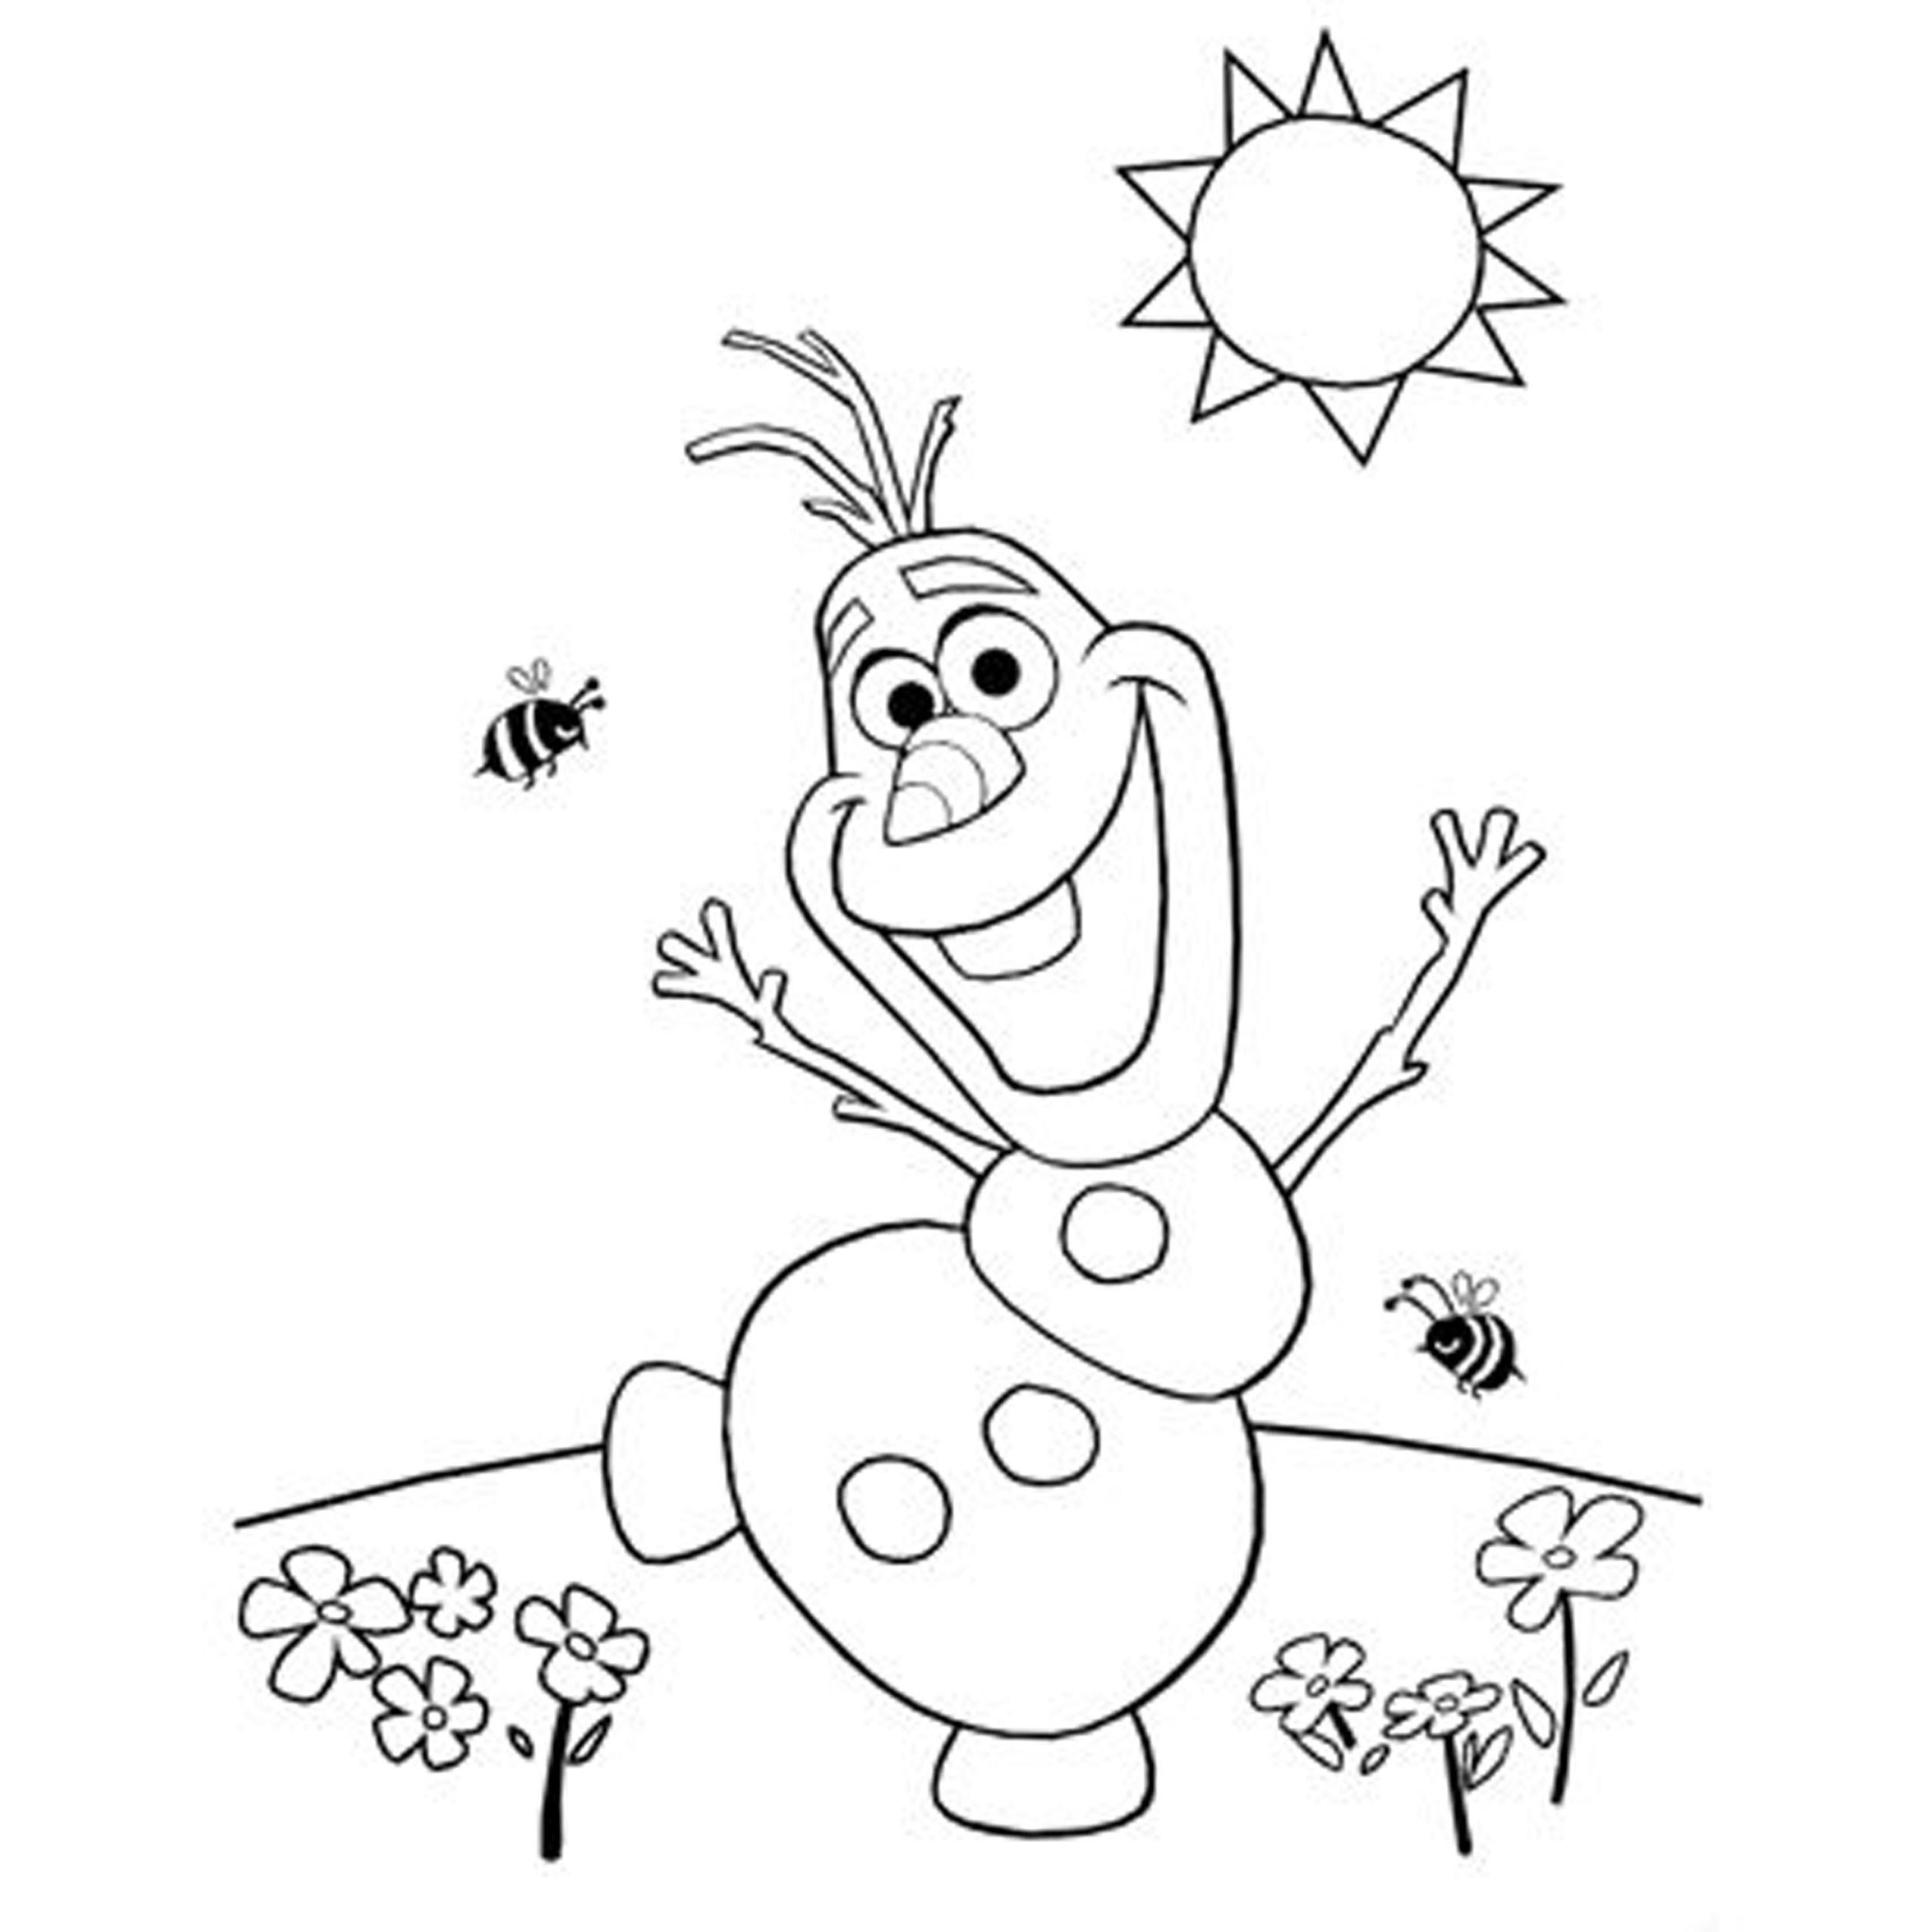 Frozen Coloring Worksheets Printable Worksheets And Activities For Teachers Parents Tutors And Homeschool Families